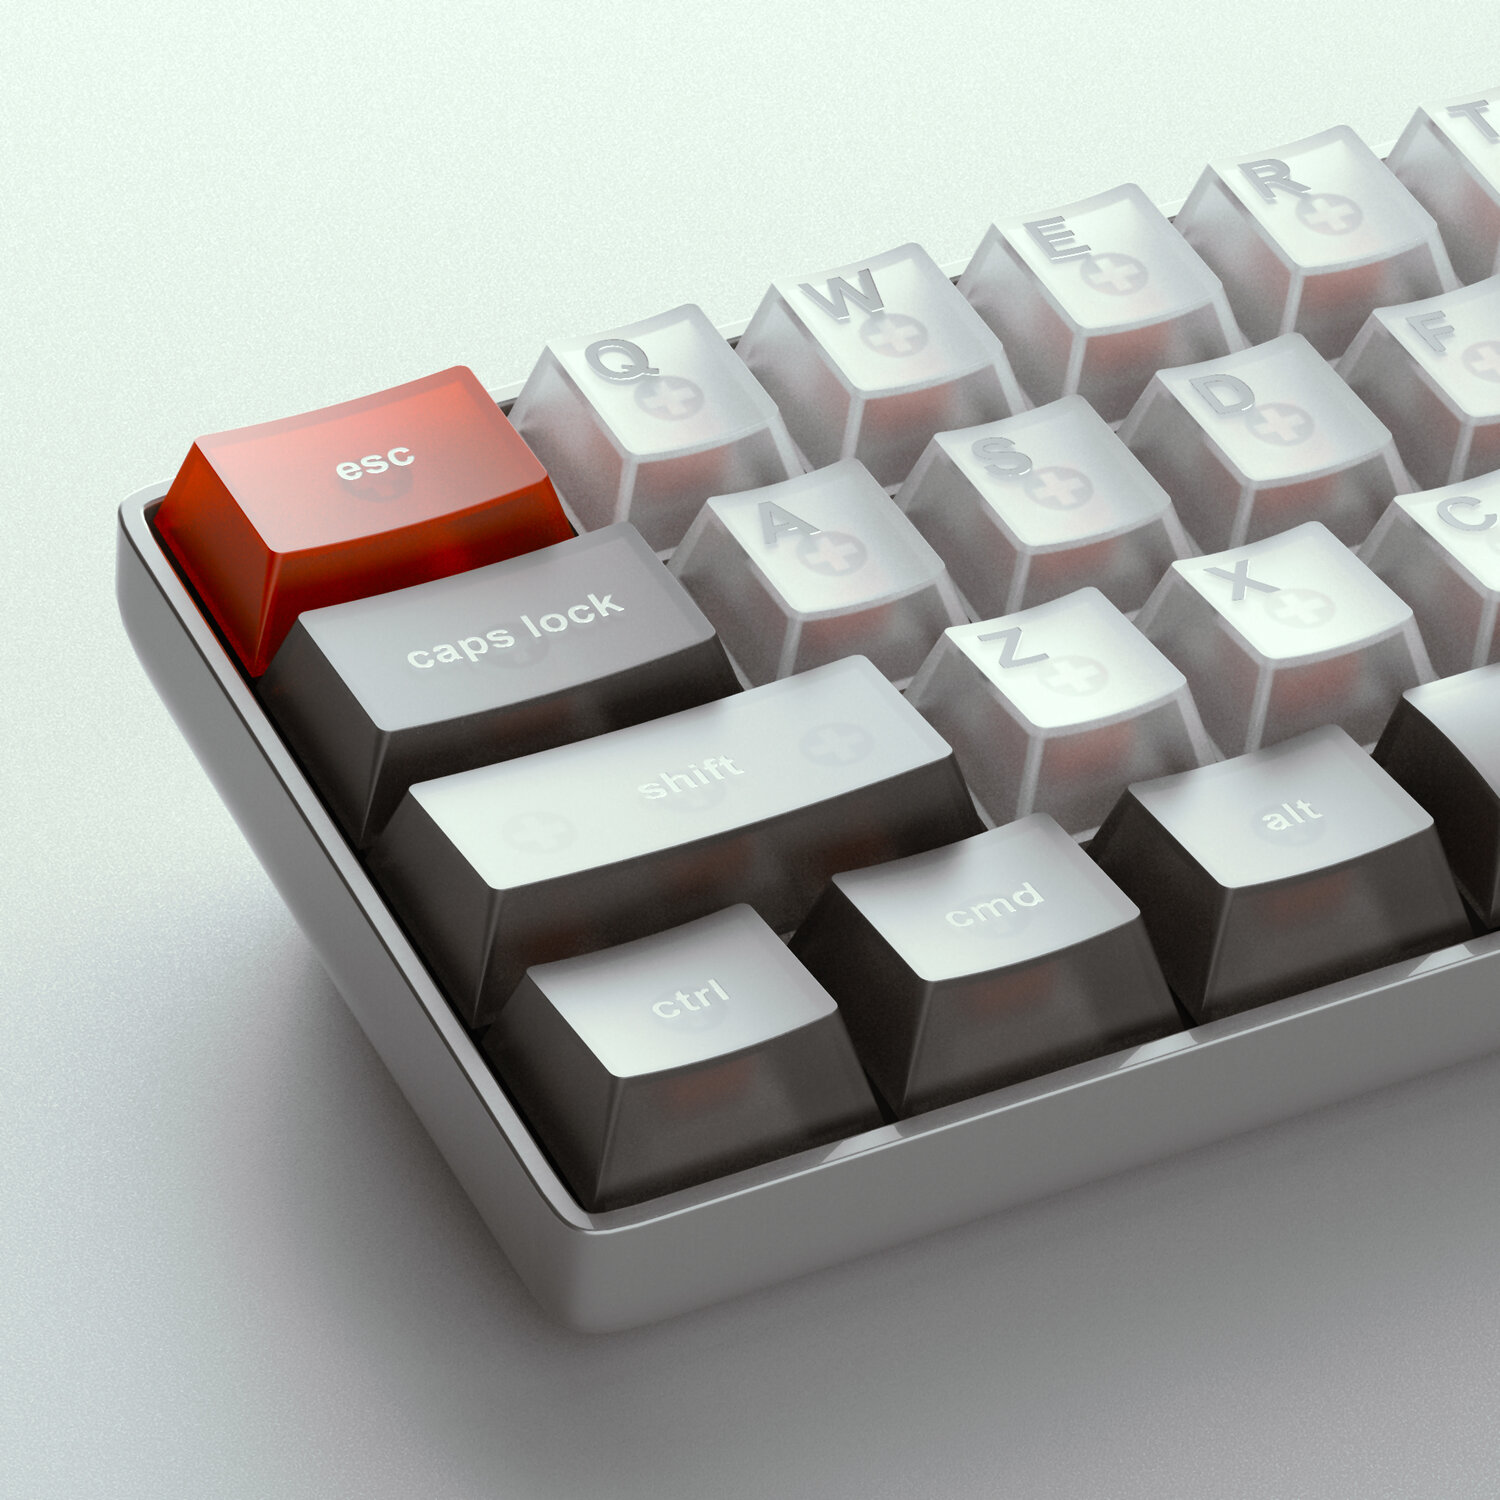 keyboard-finals-esc-key-15.jpg